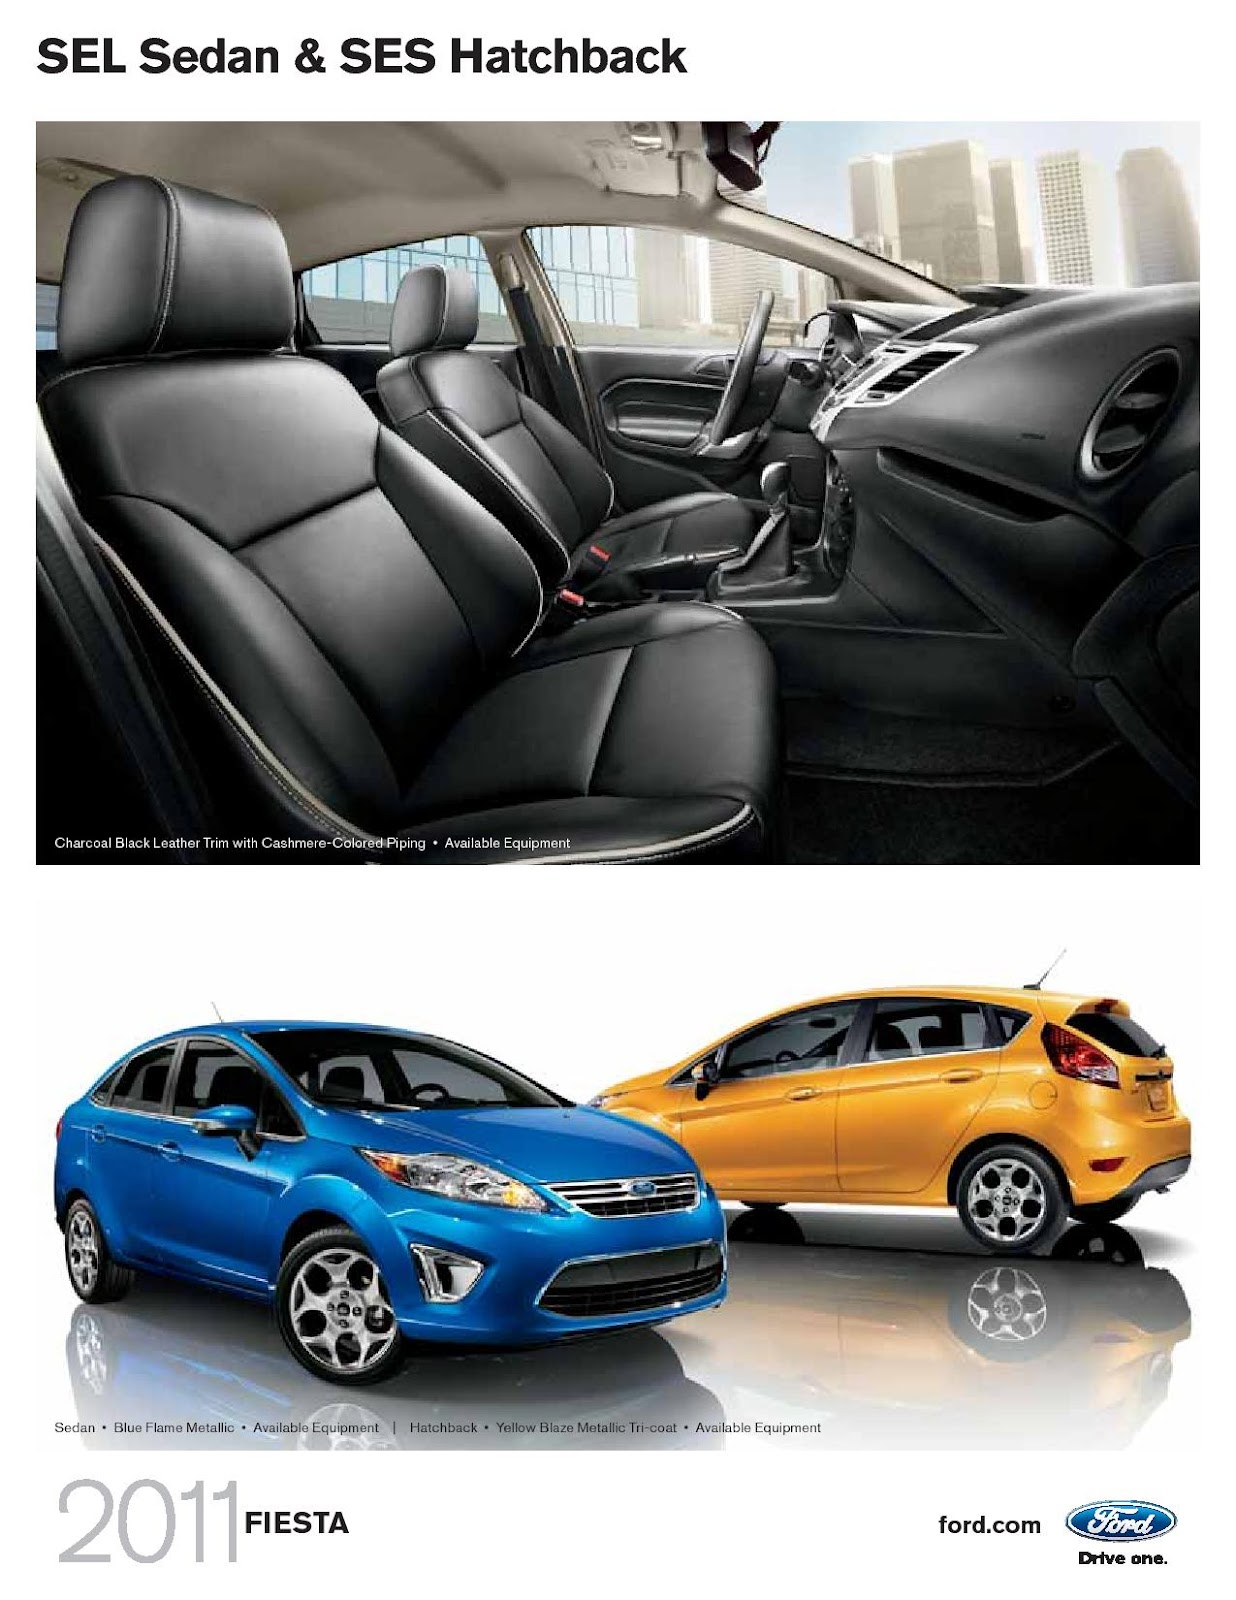 brand new toyota camry for sale philippines harga grand avanza 1.3 g m/t cars ford fiesta